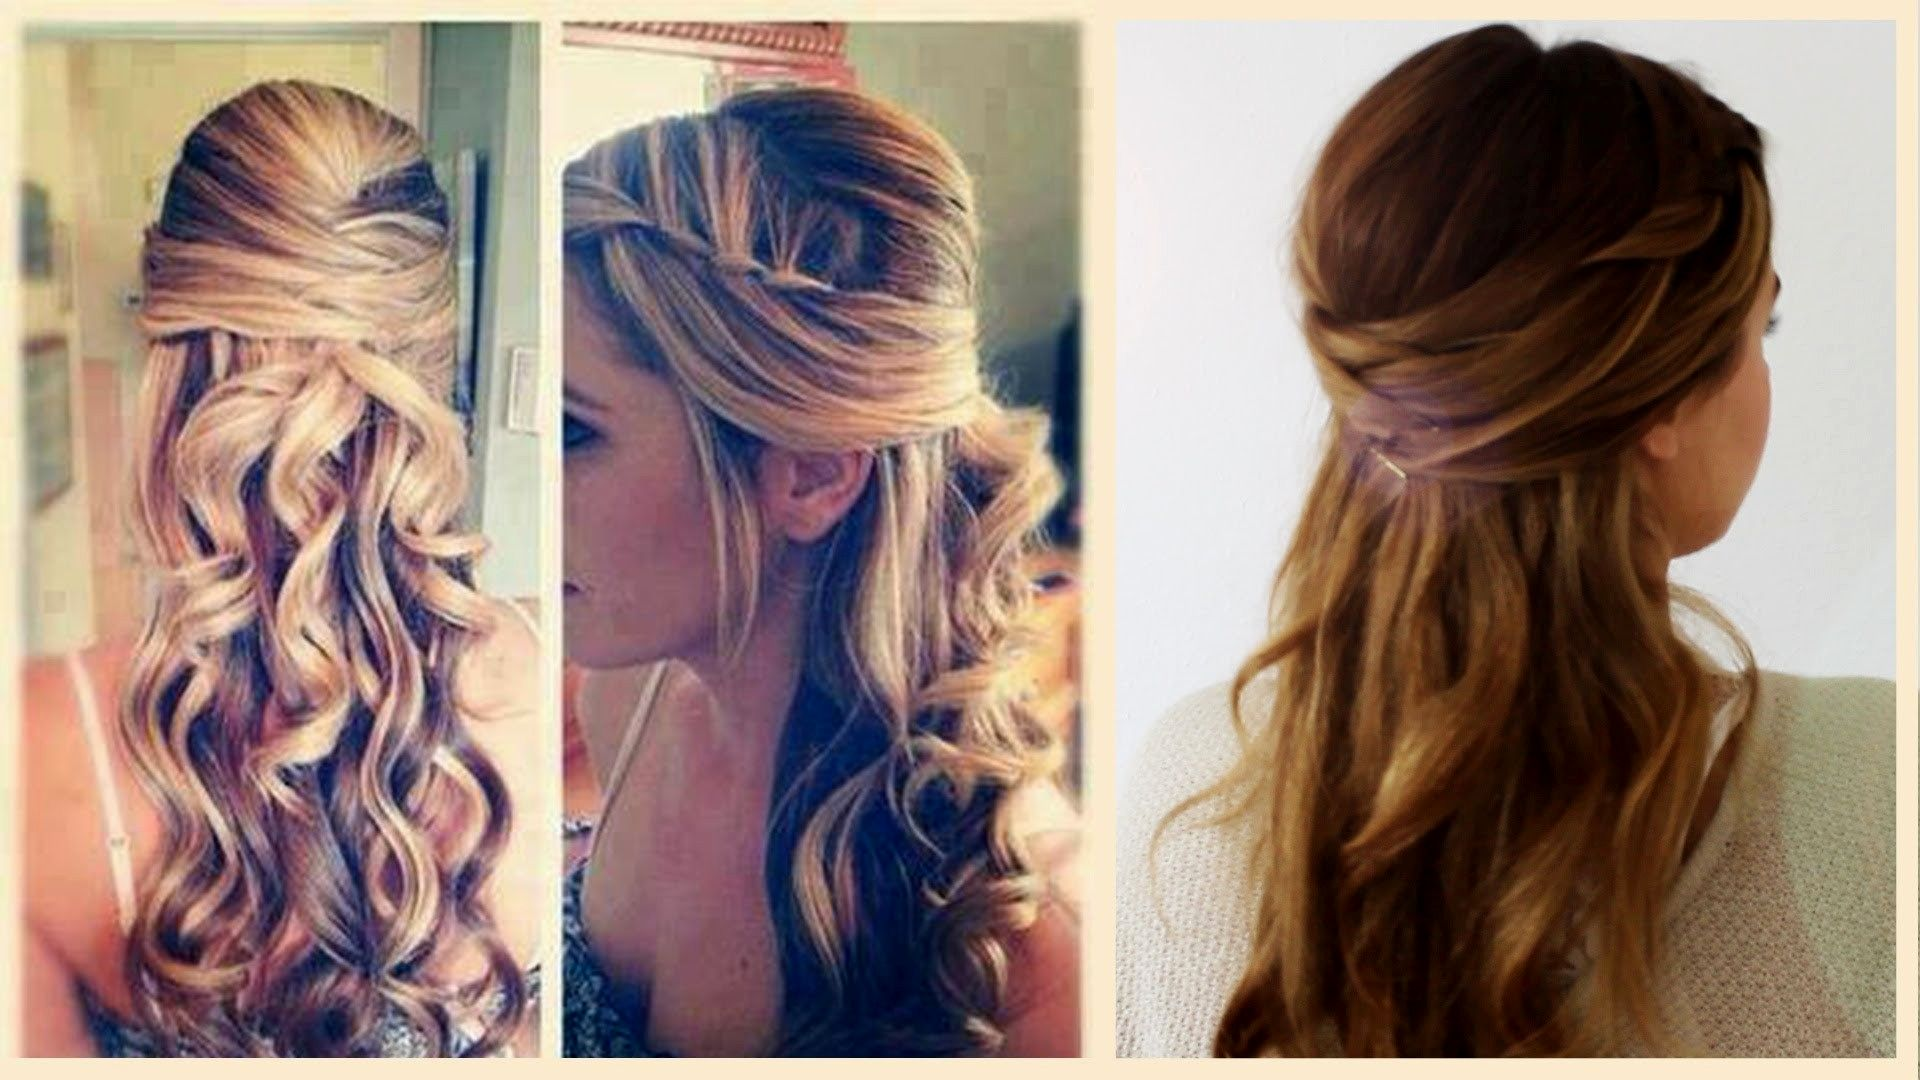 Inspirational Hairstyles Slim Face Photo Image Inspirational Hairstyles Slim Face Gallery